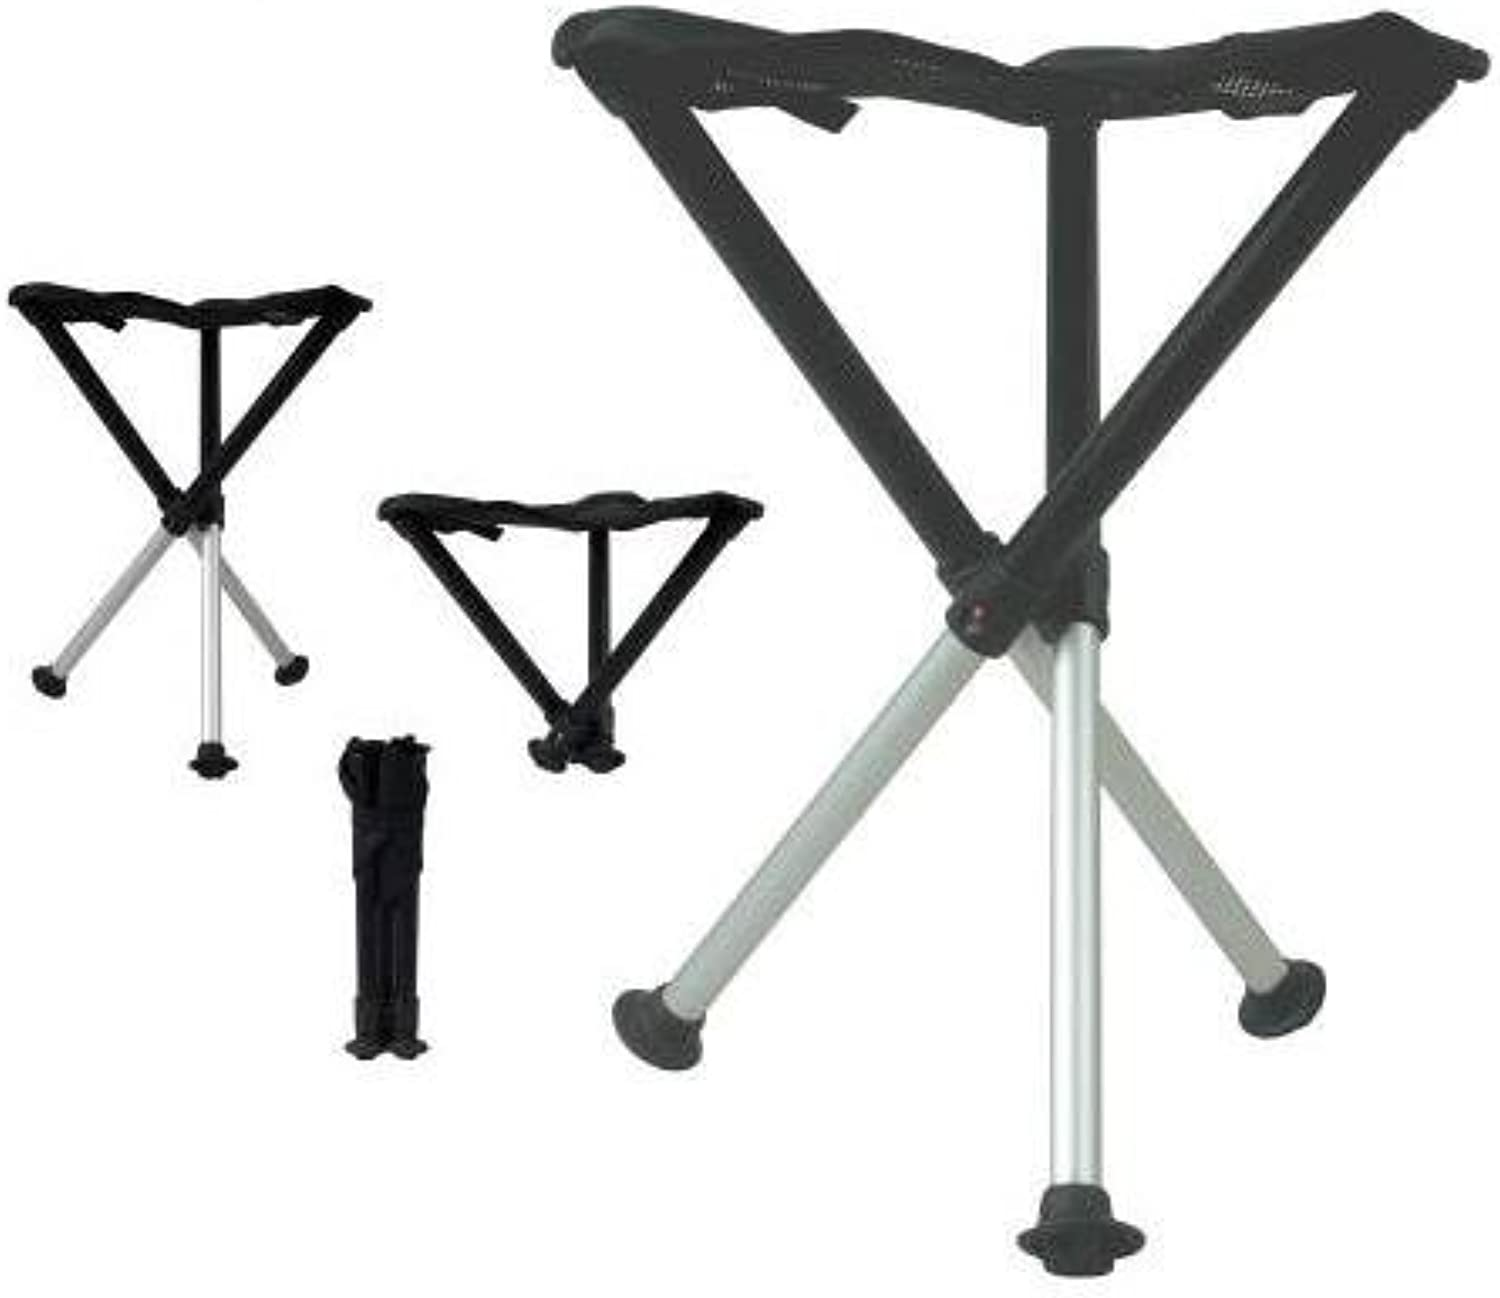 Walkstool 63547 Comfort Compact Stool Portable Folding Chair with Case